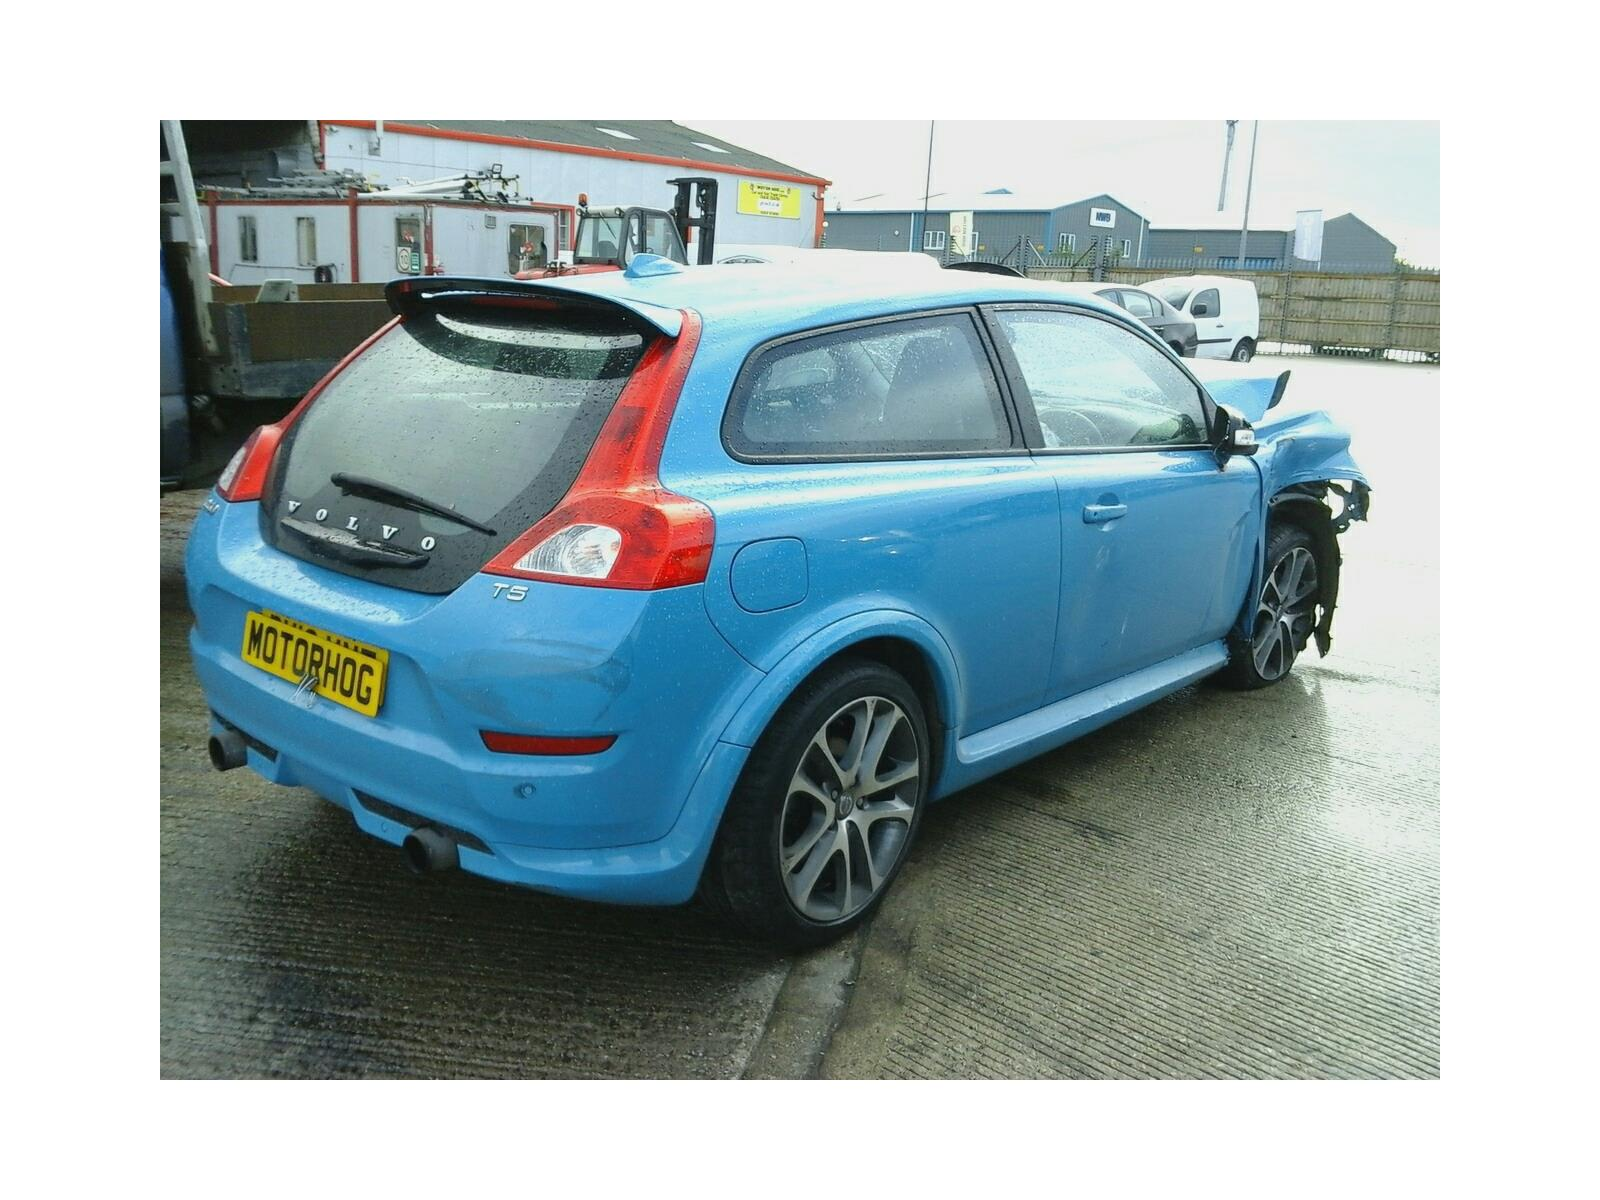 2013 Volvo C30 2010 On 3 Door Coupe (Petrol / Manual) breaking for